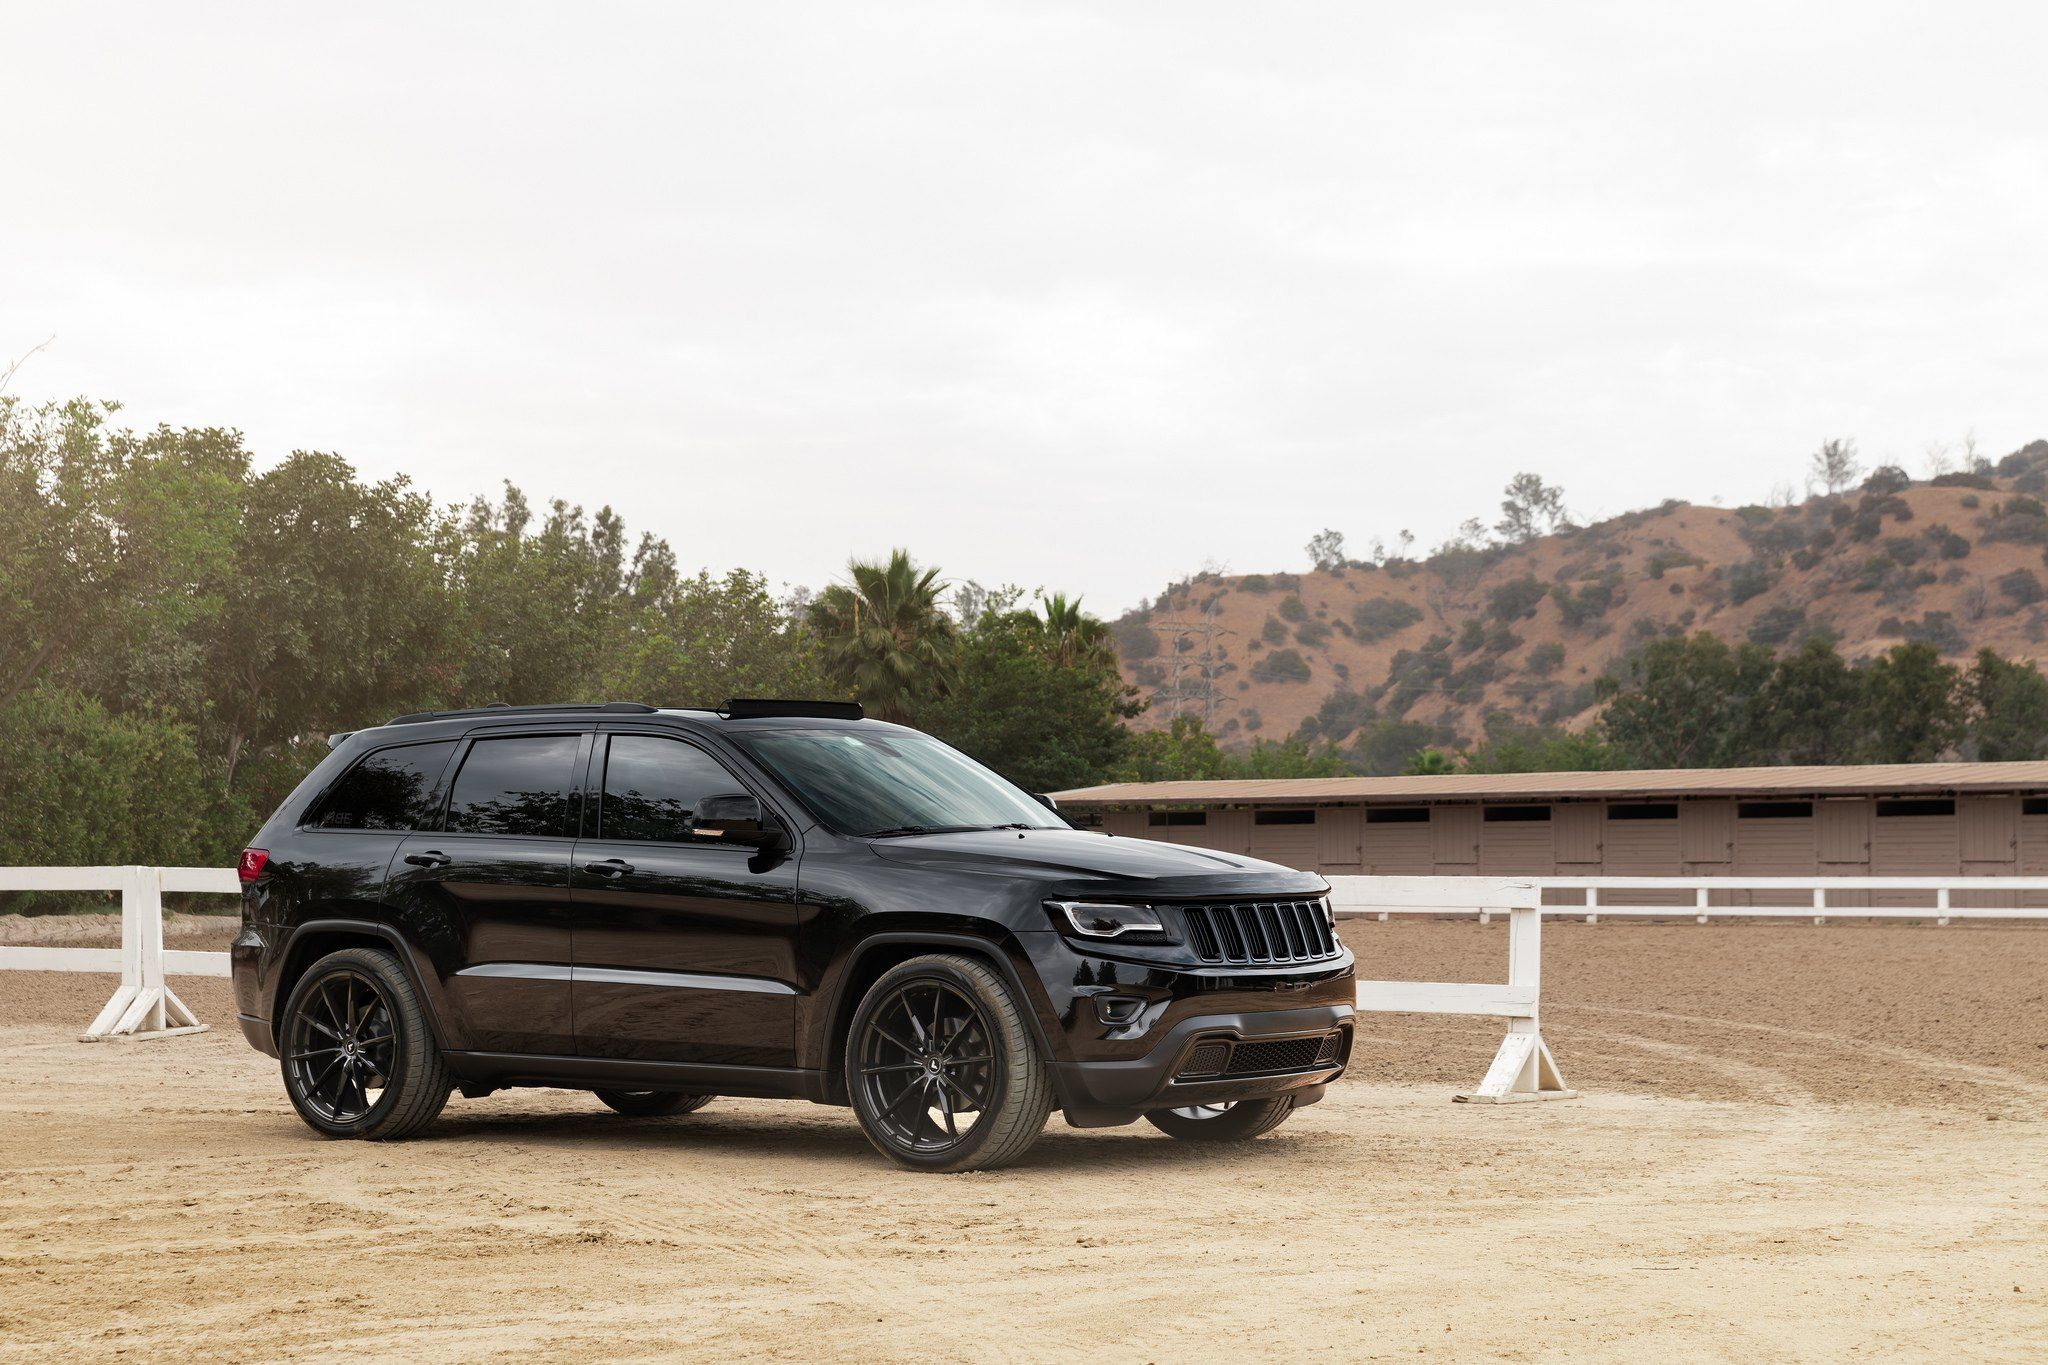 Black Out Styling Reveals The Vip Spirit Of Jeep Grand Cherokee Jeep Grand Jeep Grand Cherokee Jeep Srt8